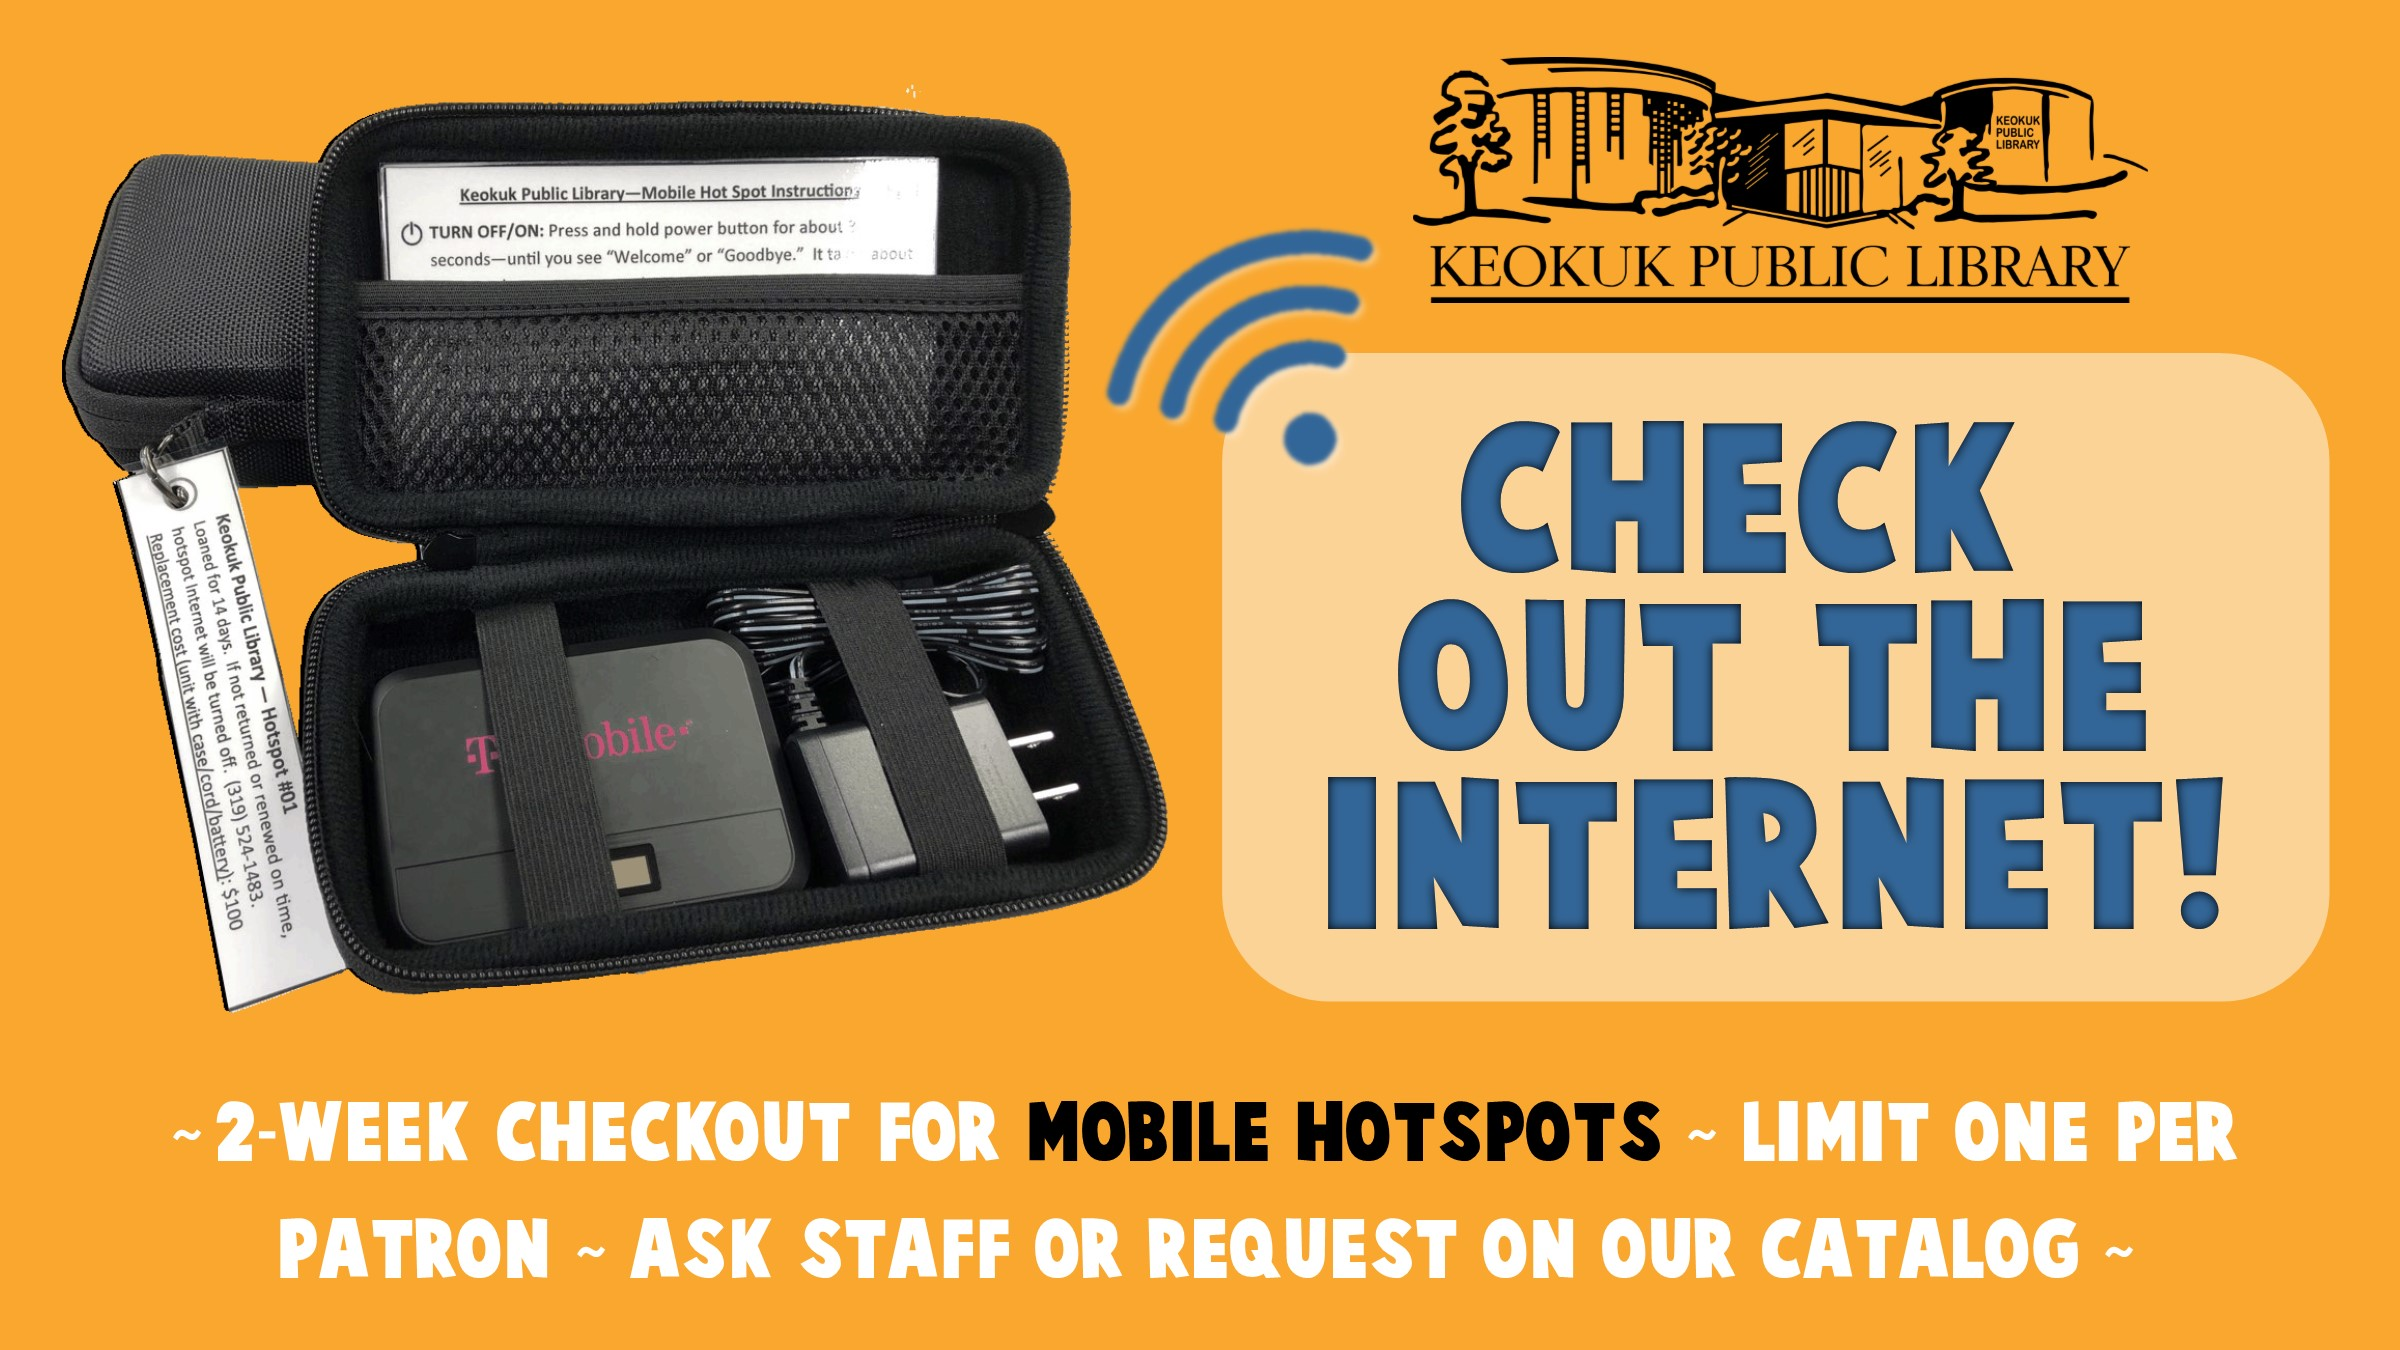 Check out the Internet!  We now have mobile hotspots available for checkout.